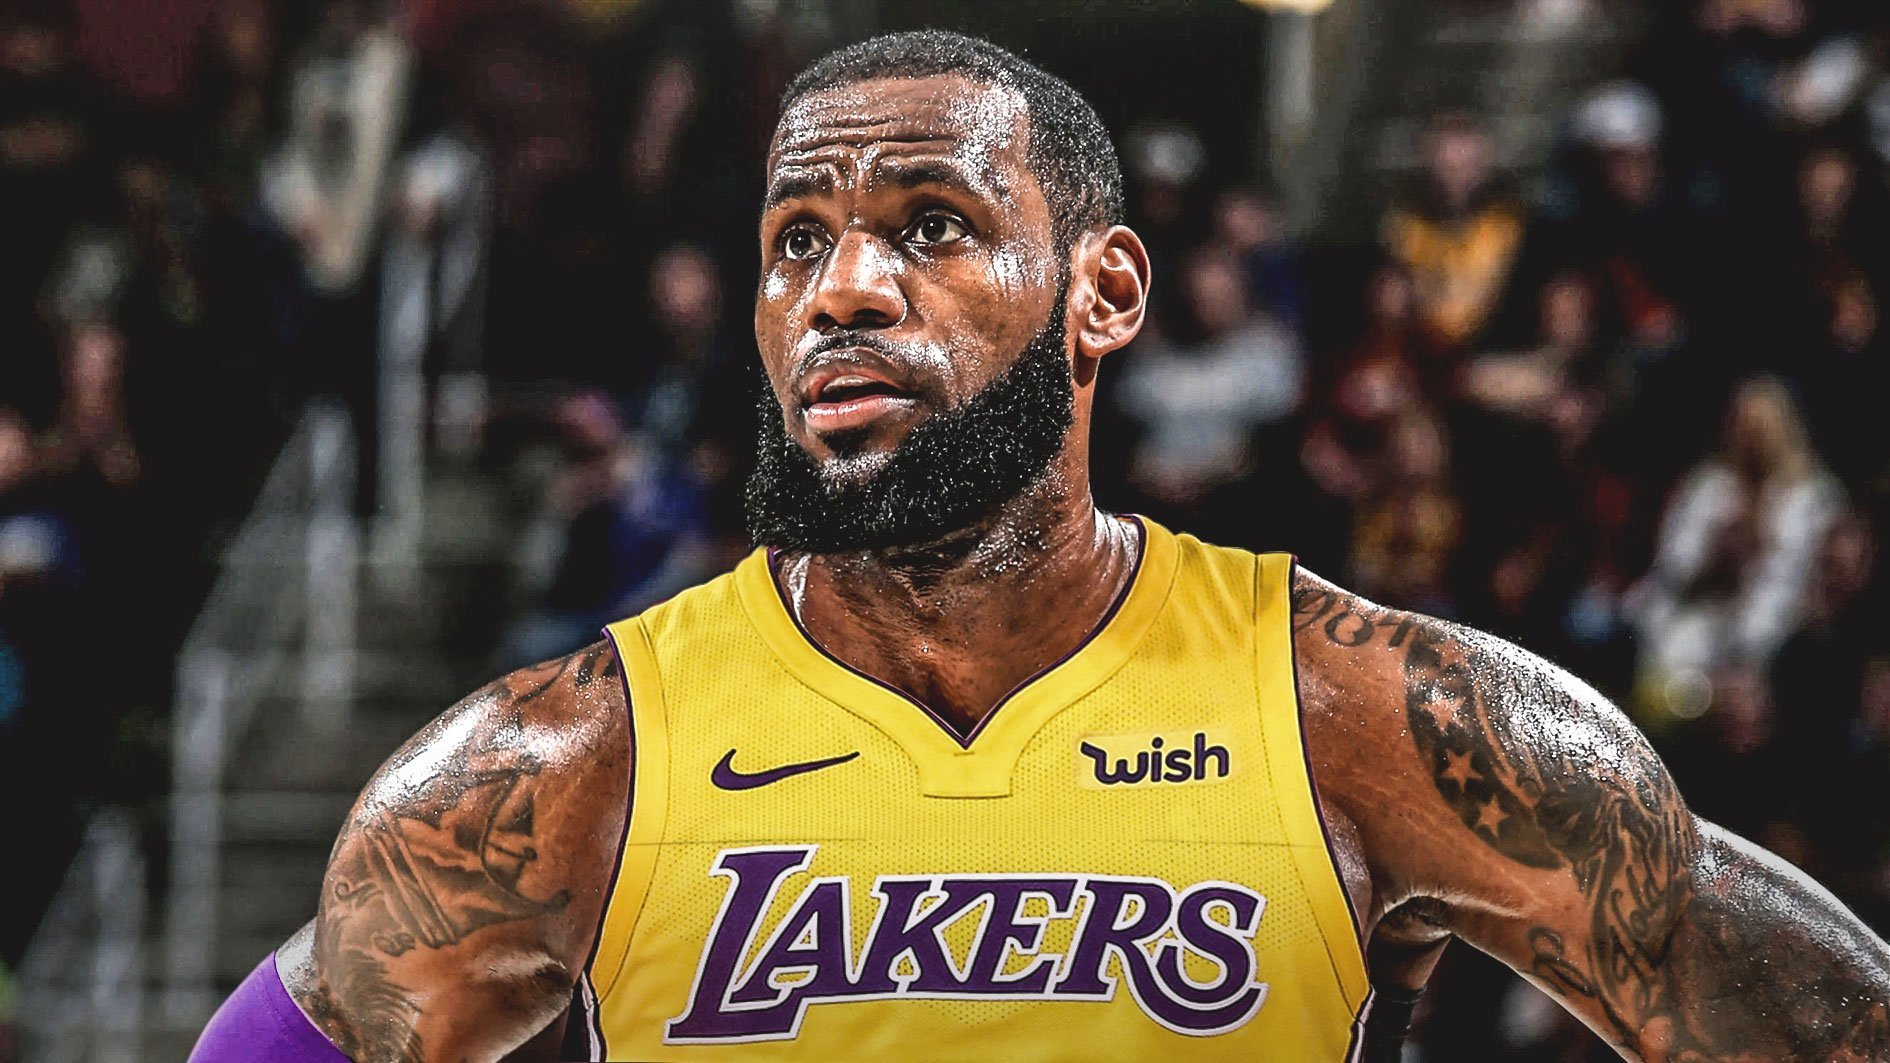 LeBron signs with the LA Lakers for four years, $154 million